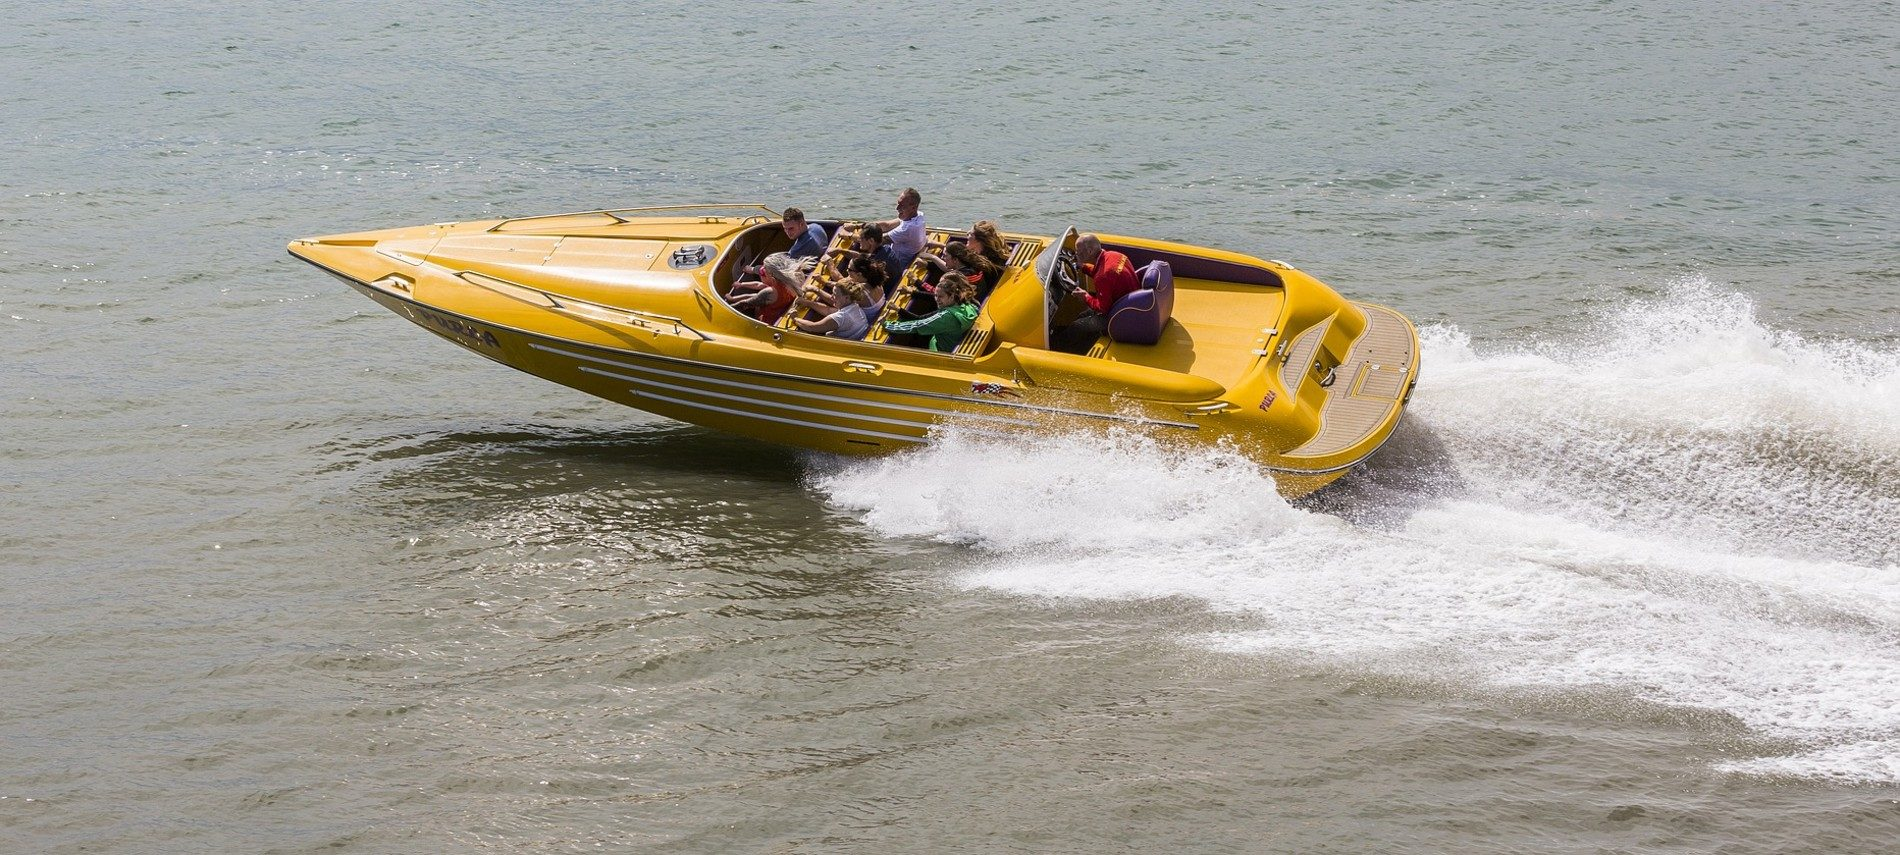 Bright yellow powerboat with multiple passengers speeding across an empty body of water with white spray behind